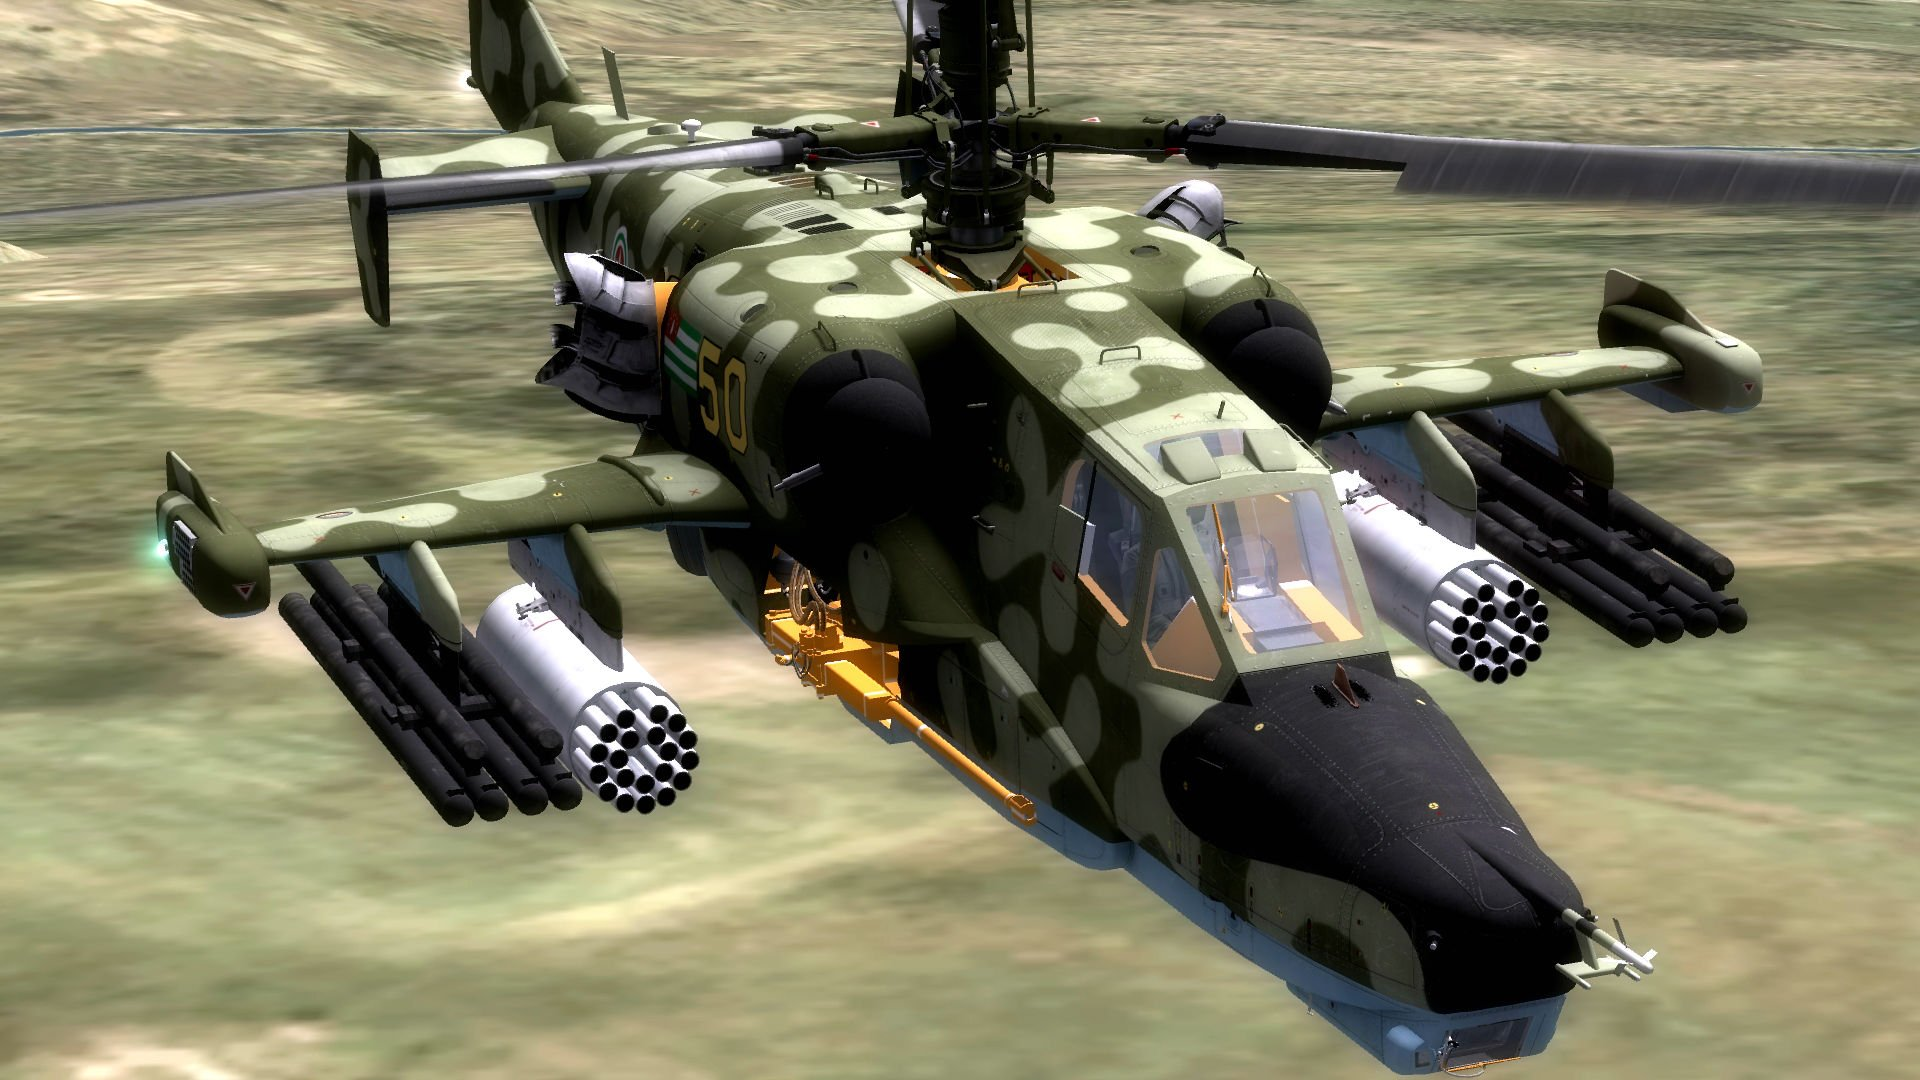 New Military Weapons 2014 Attack helicopter militaryNew Military Technology 2014